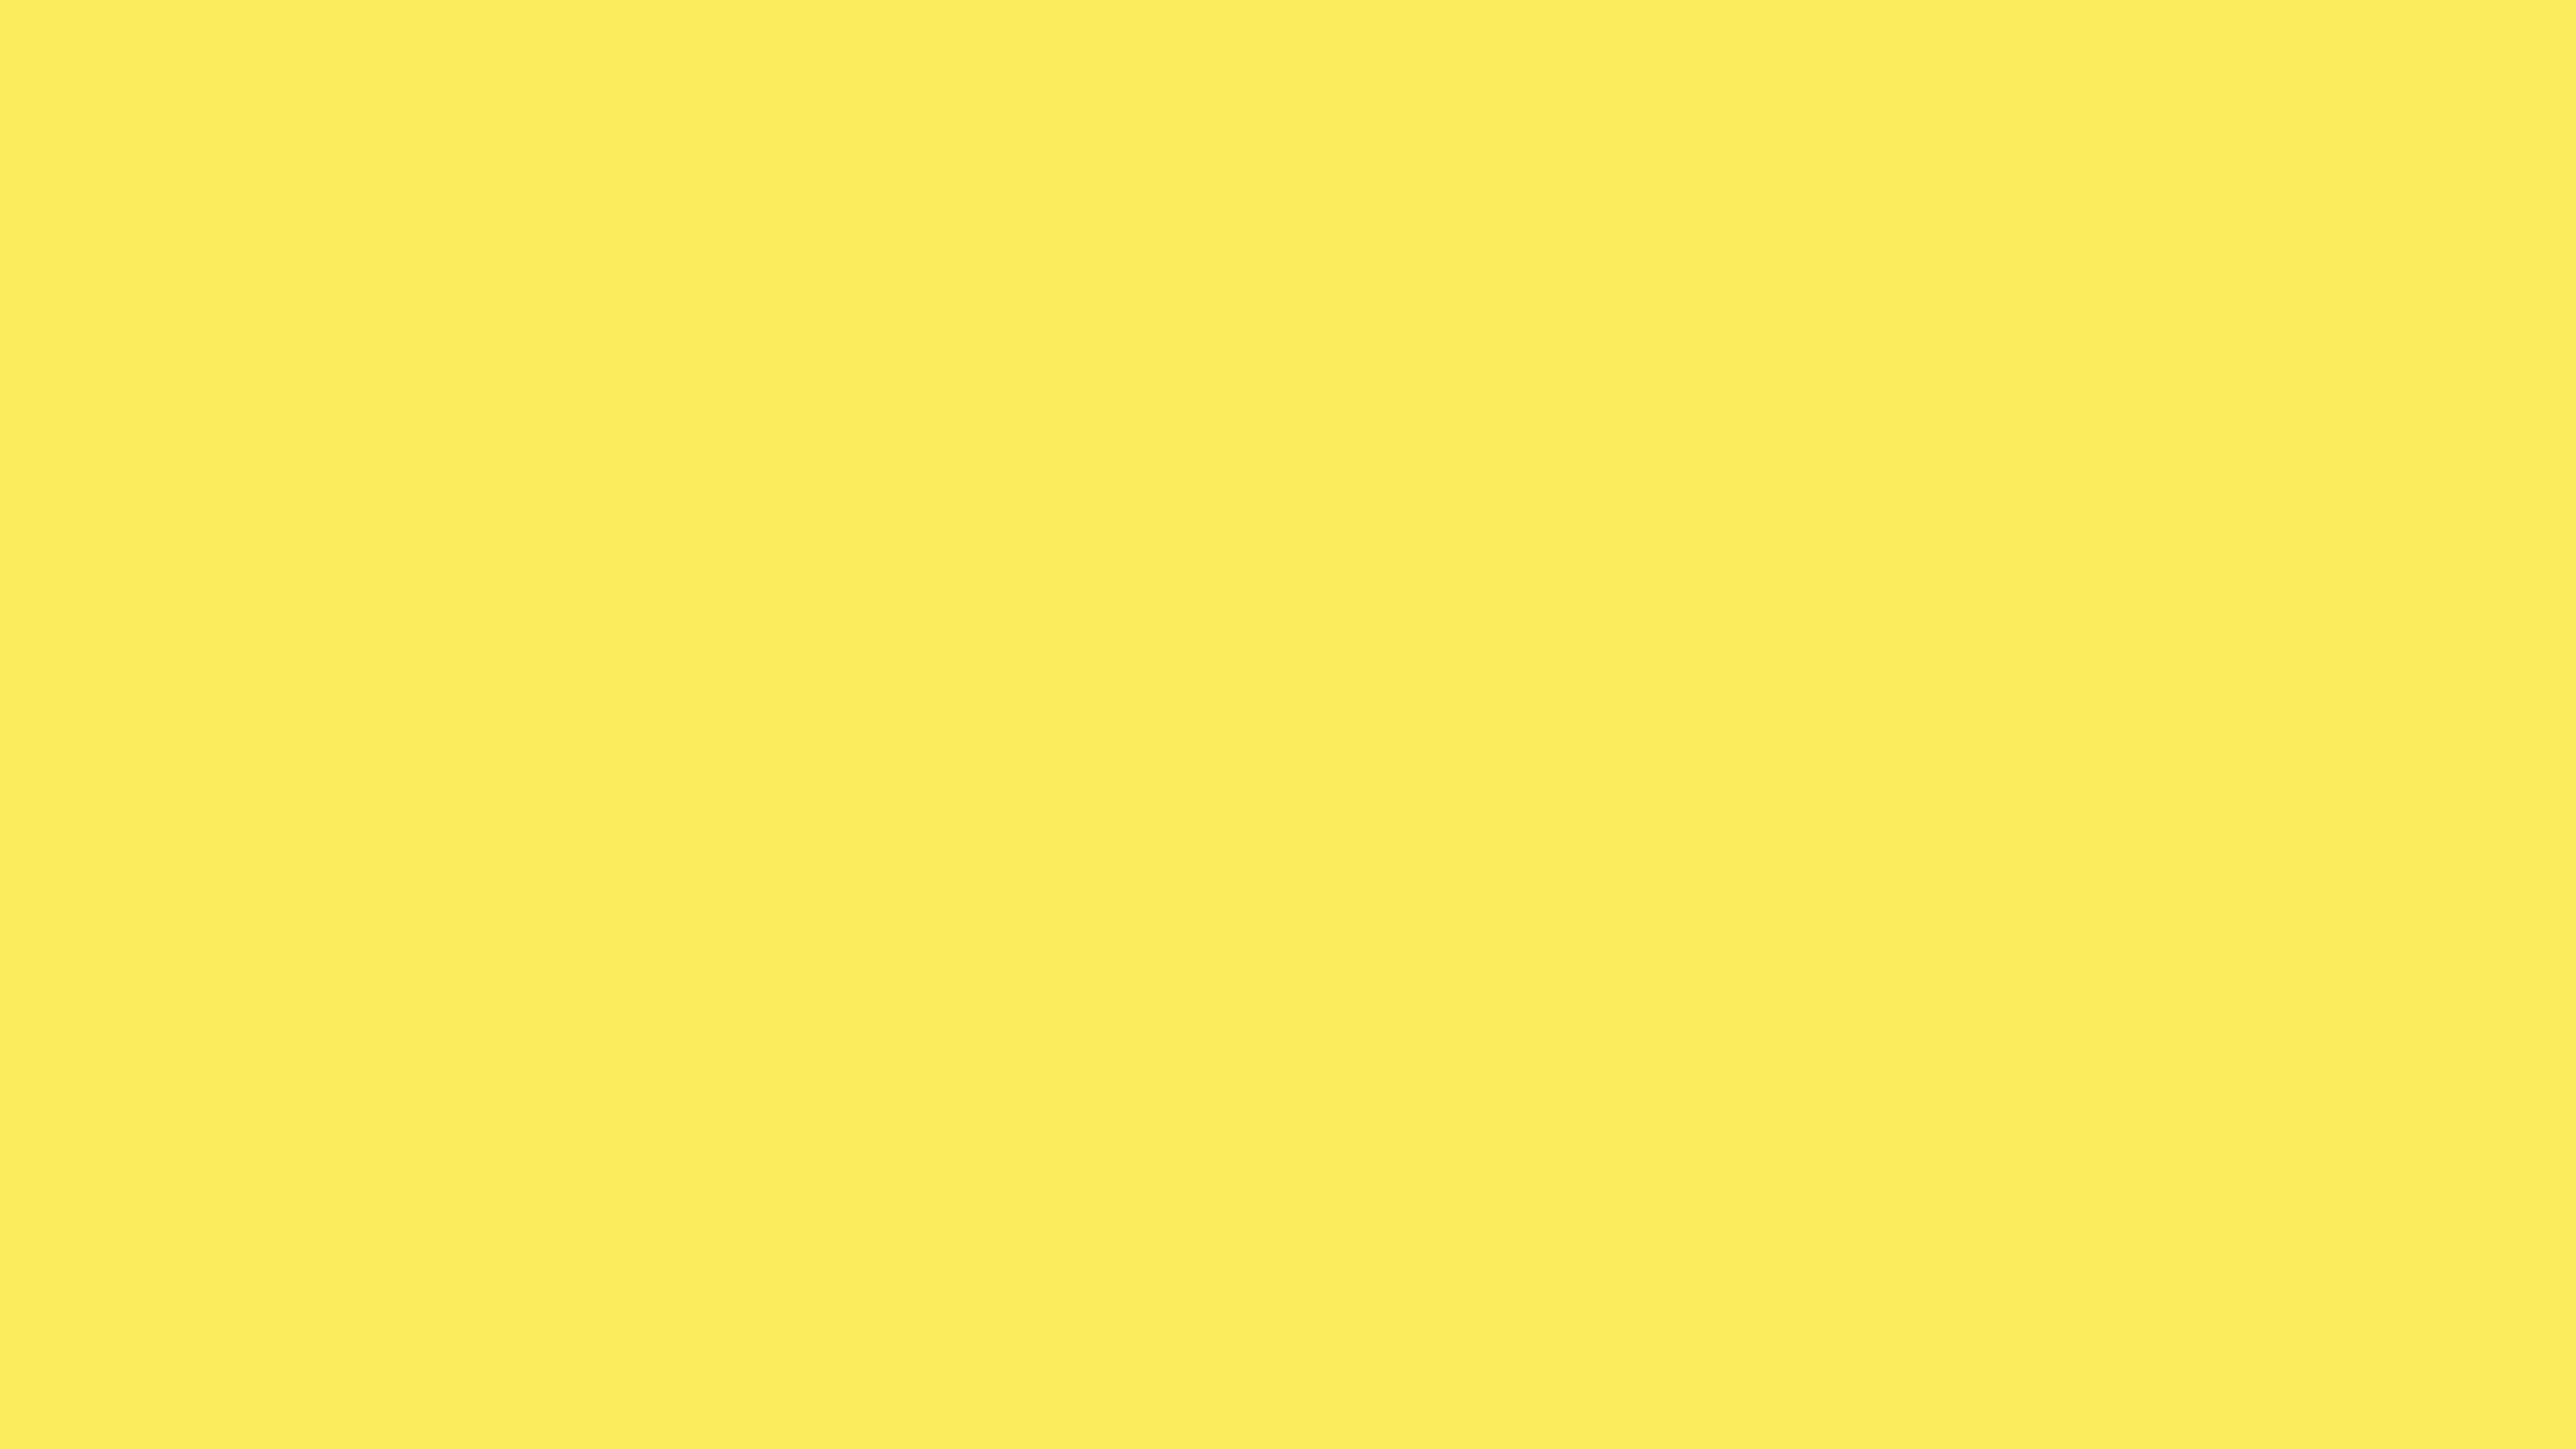 5120x2880 Maize Solid Color Background